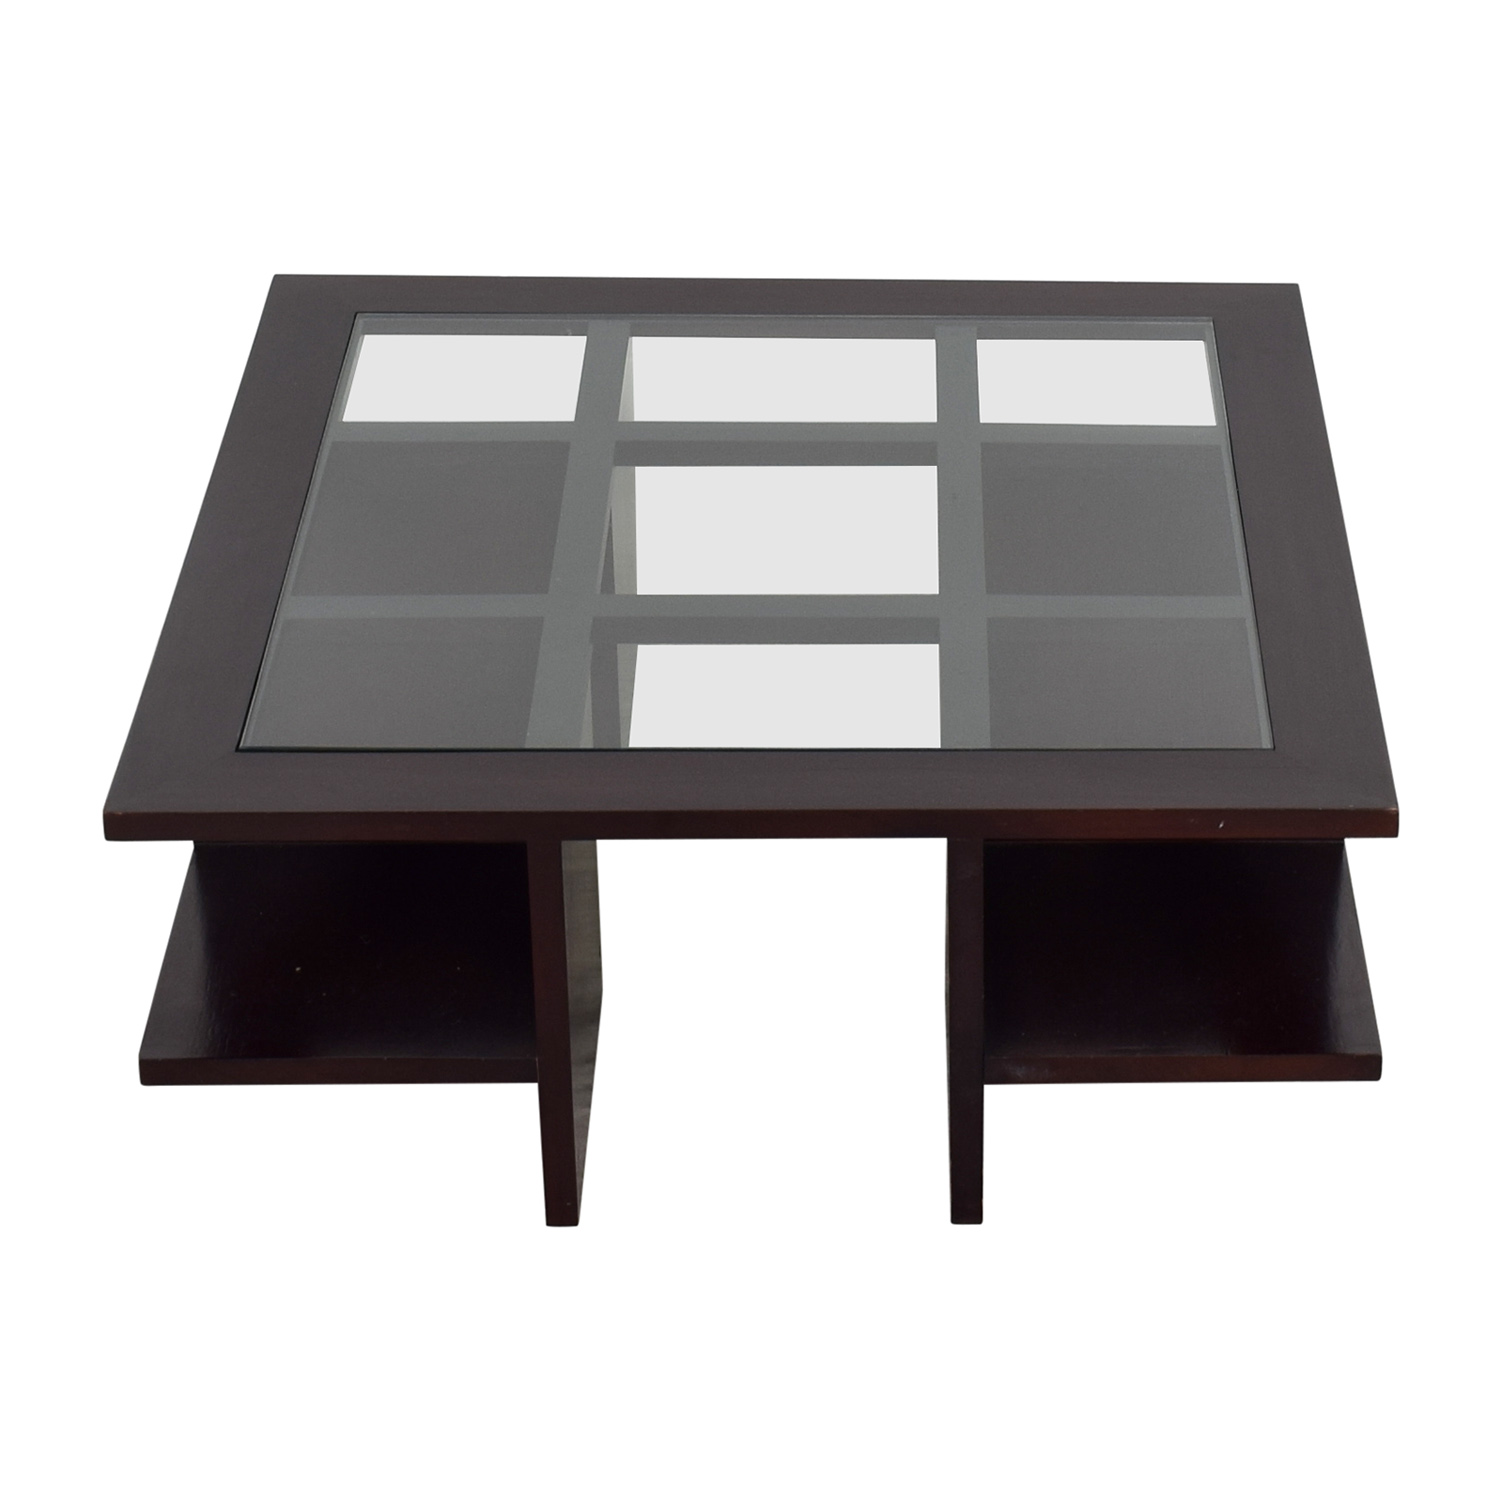 Moie Wood and Glass Coffee Table with Side Shelves sale